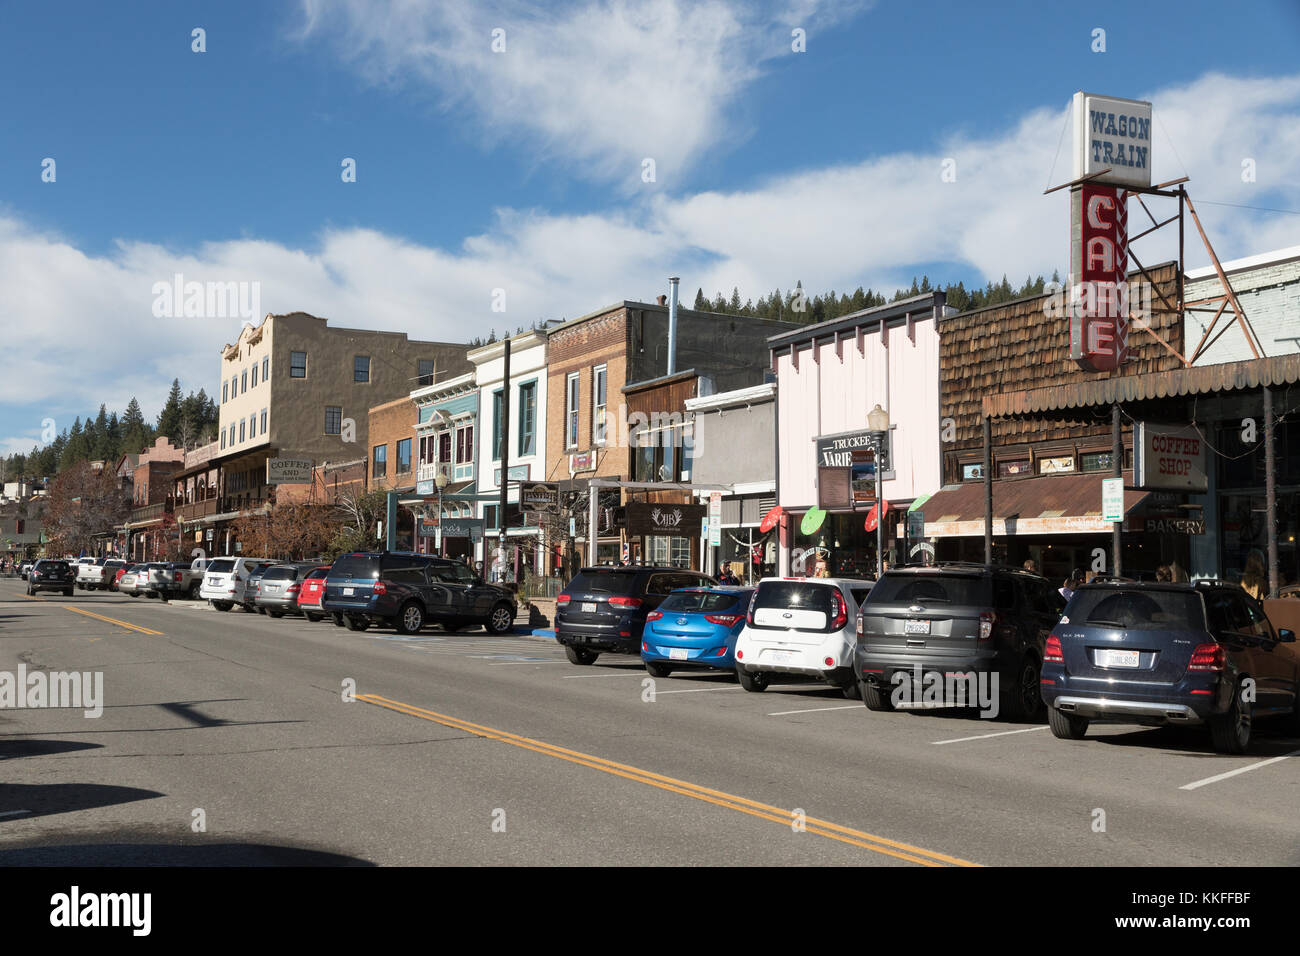 The historic town of Truckee, California is popular tourist destination with access to Lake Tahoe, Reno, and Donner - Stock Image